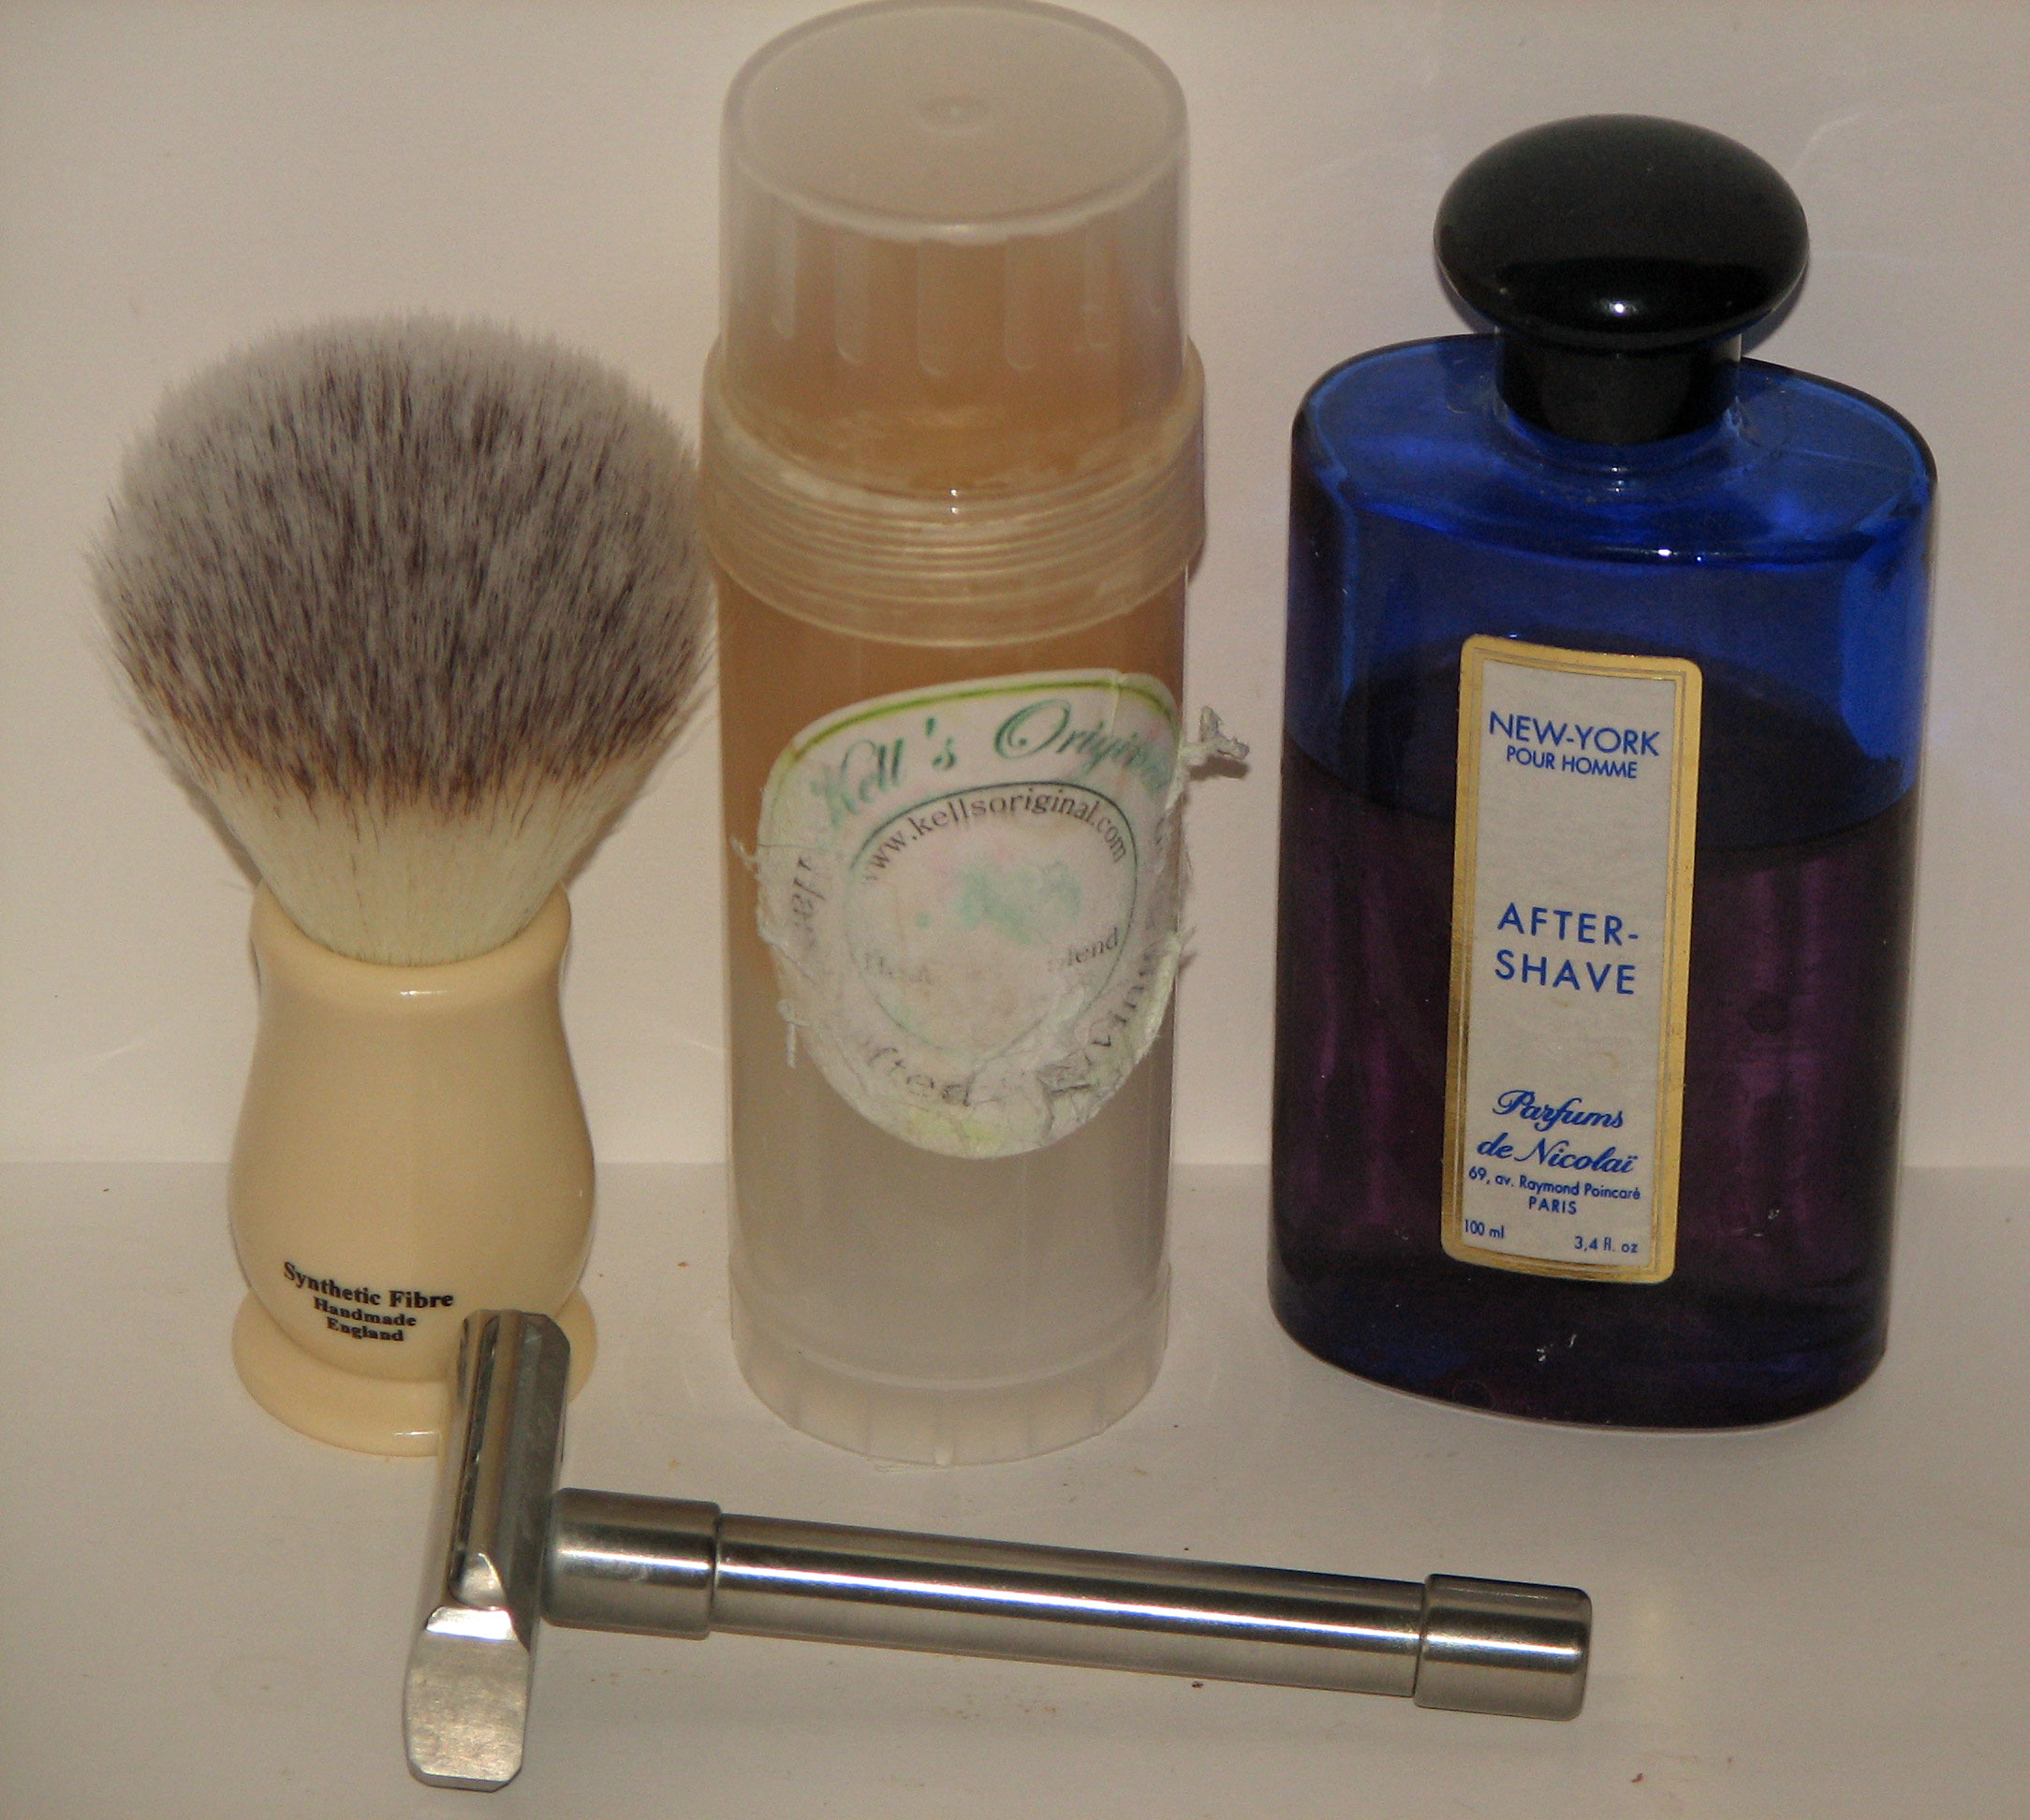 Monday shave today | Later On